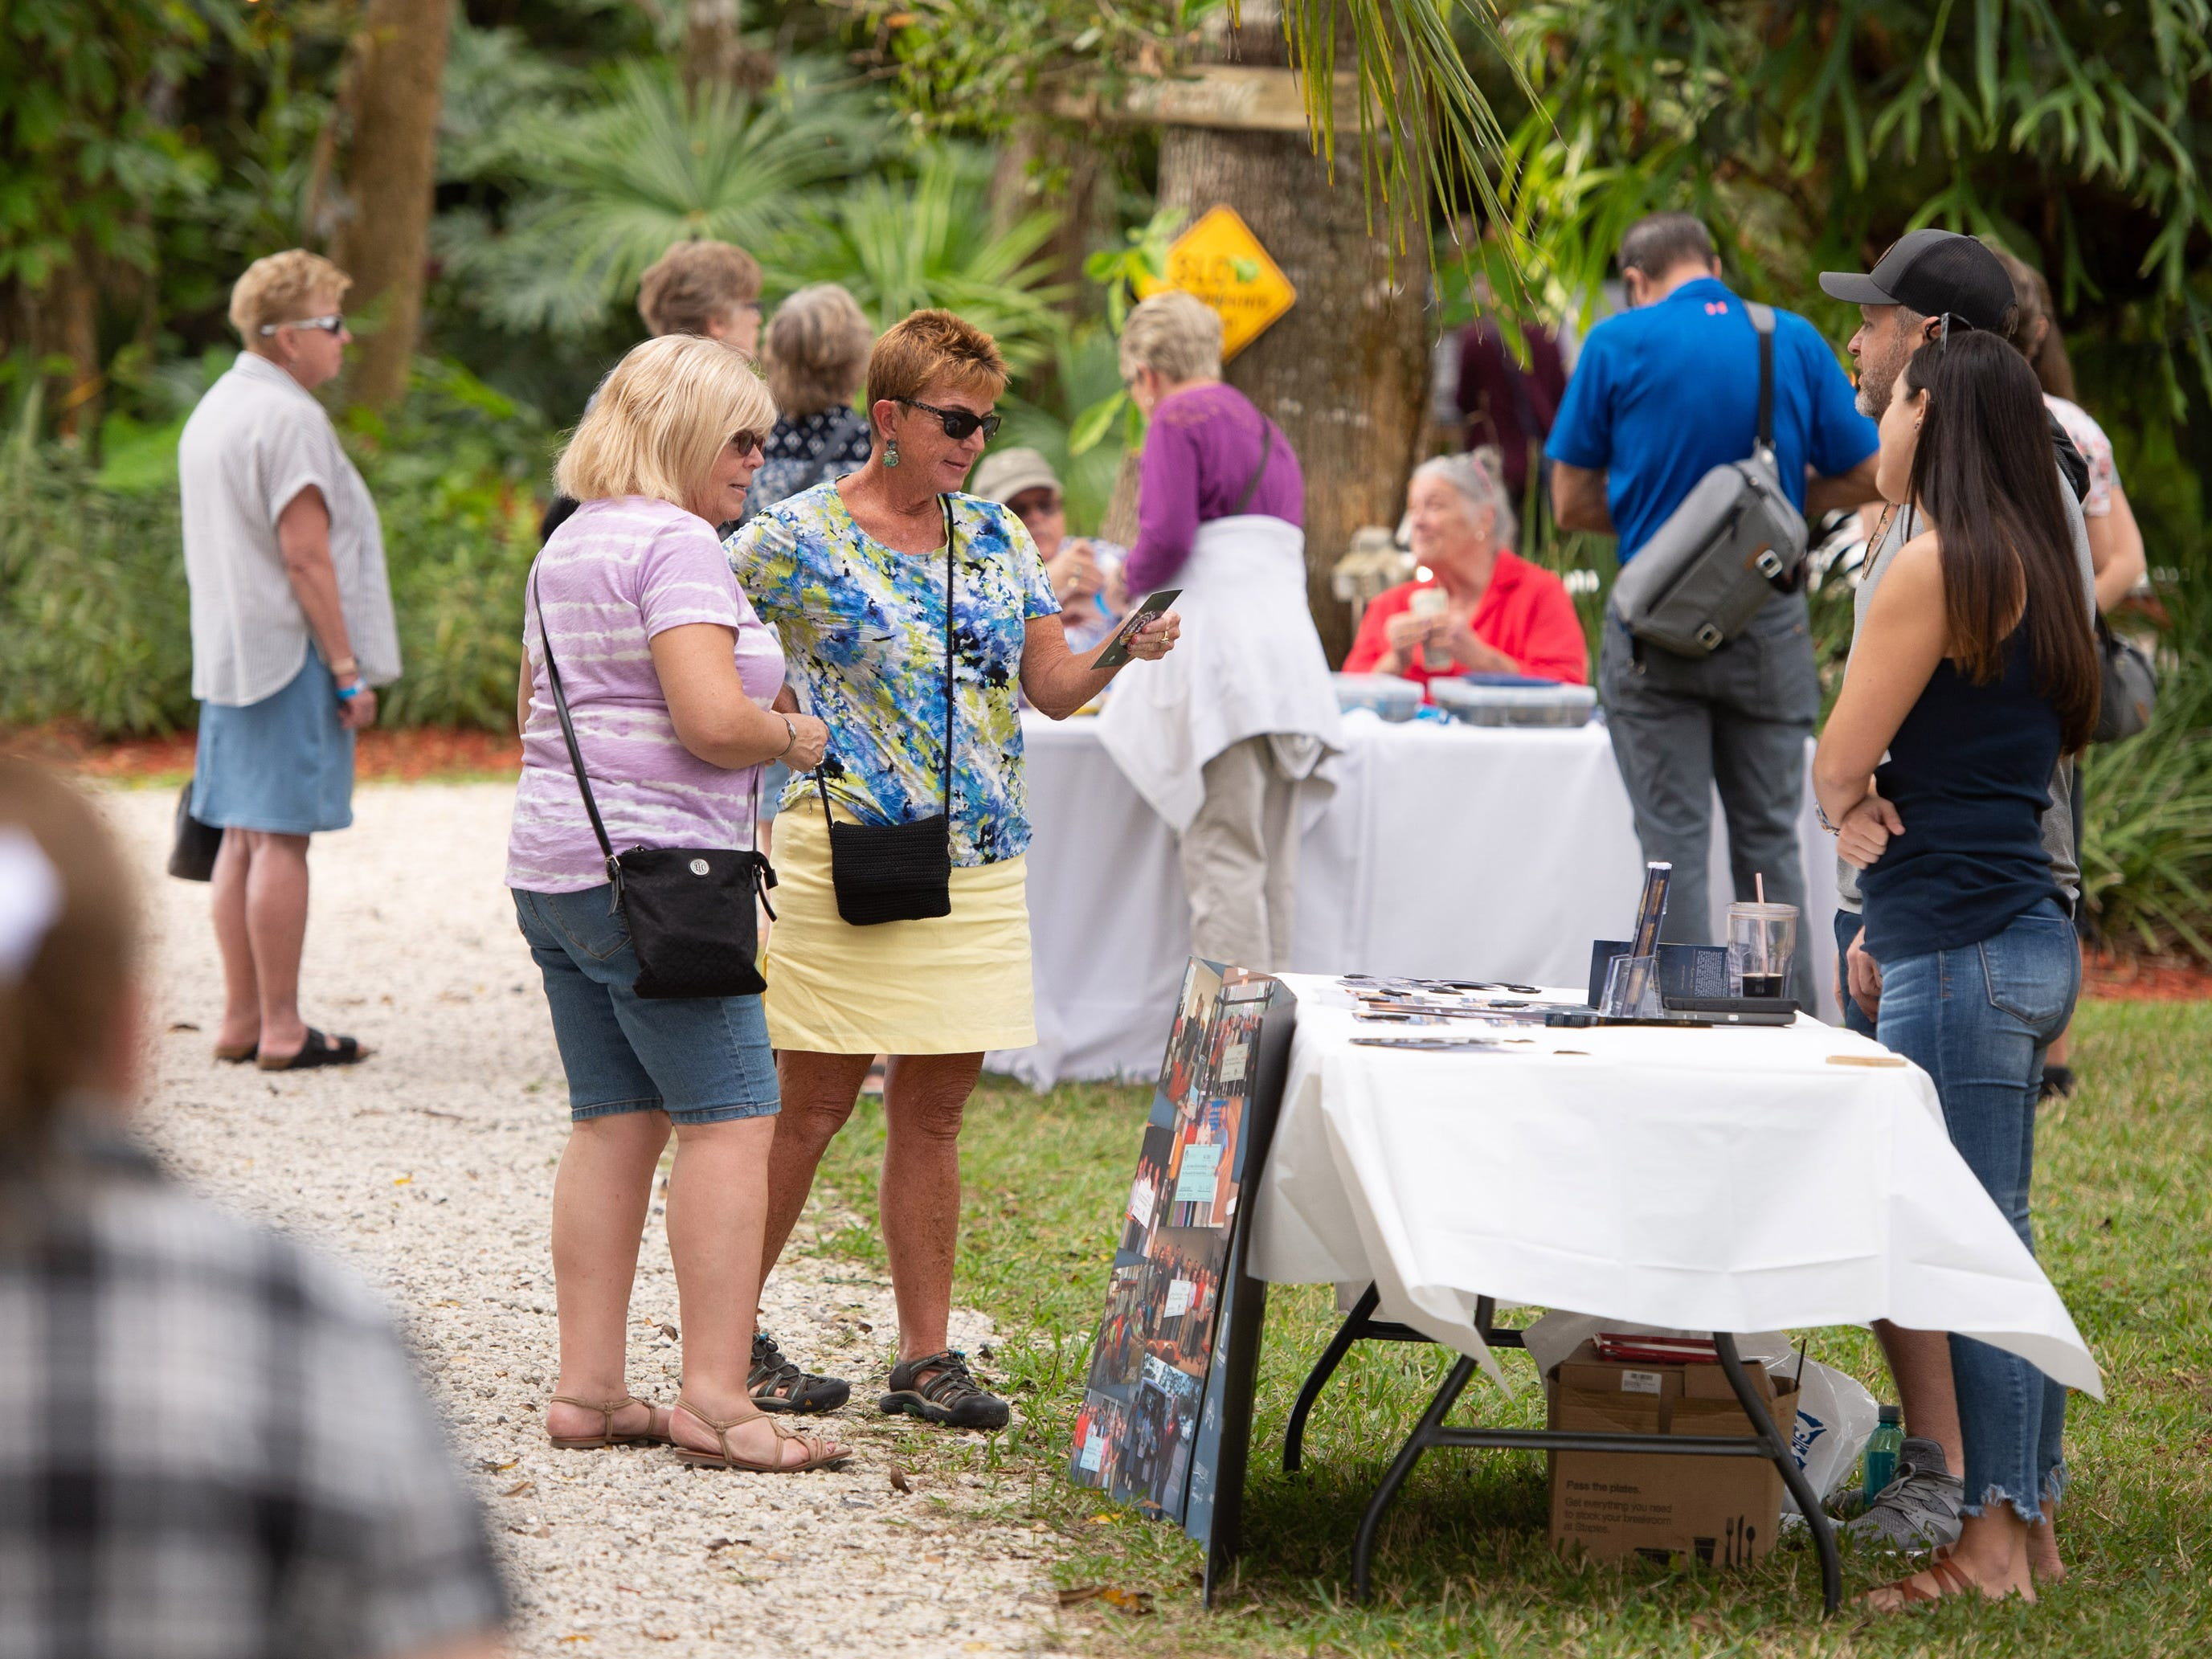 People enjoy a rare tour of the original 1914 homestead of Vero Beach visionary Waldo Sexton during the Waldo Sexton Homestead Days on Saturday, Jan. 5, 2019, at Waldo's Secret Garden in Vero Beach.